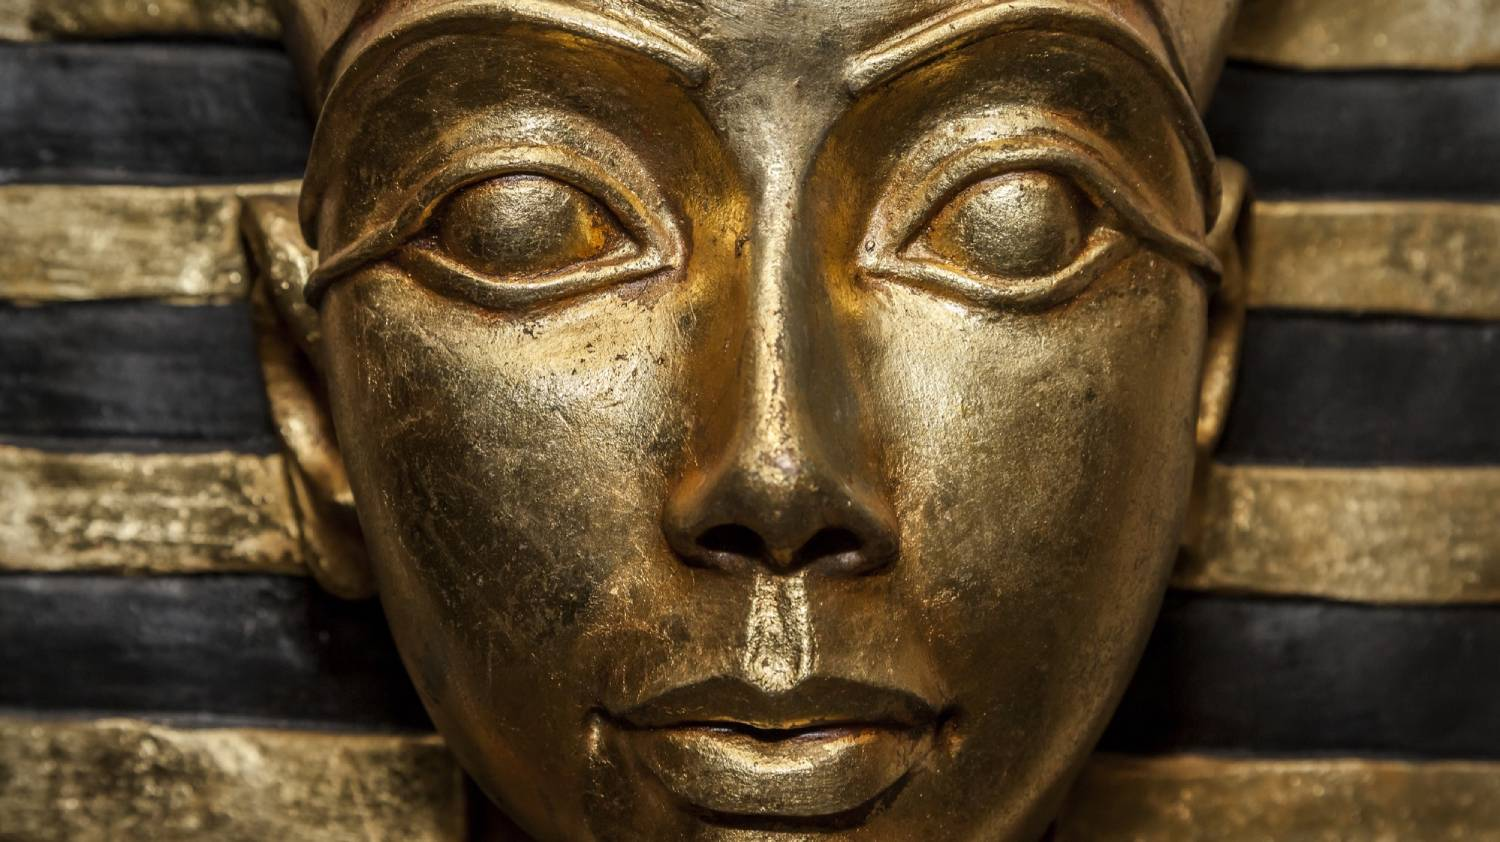 Luxor Museum - Things To Do In Luxor